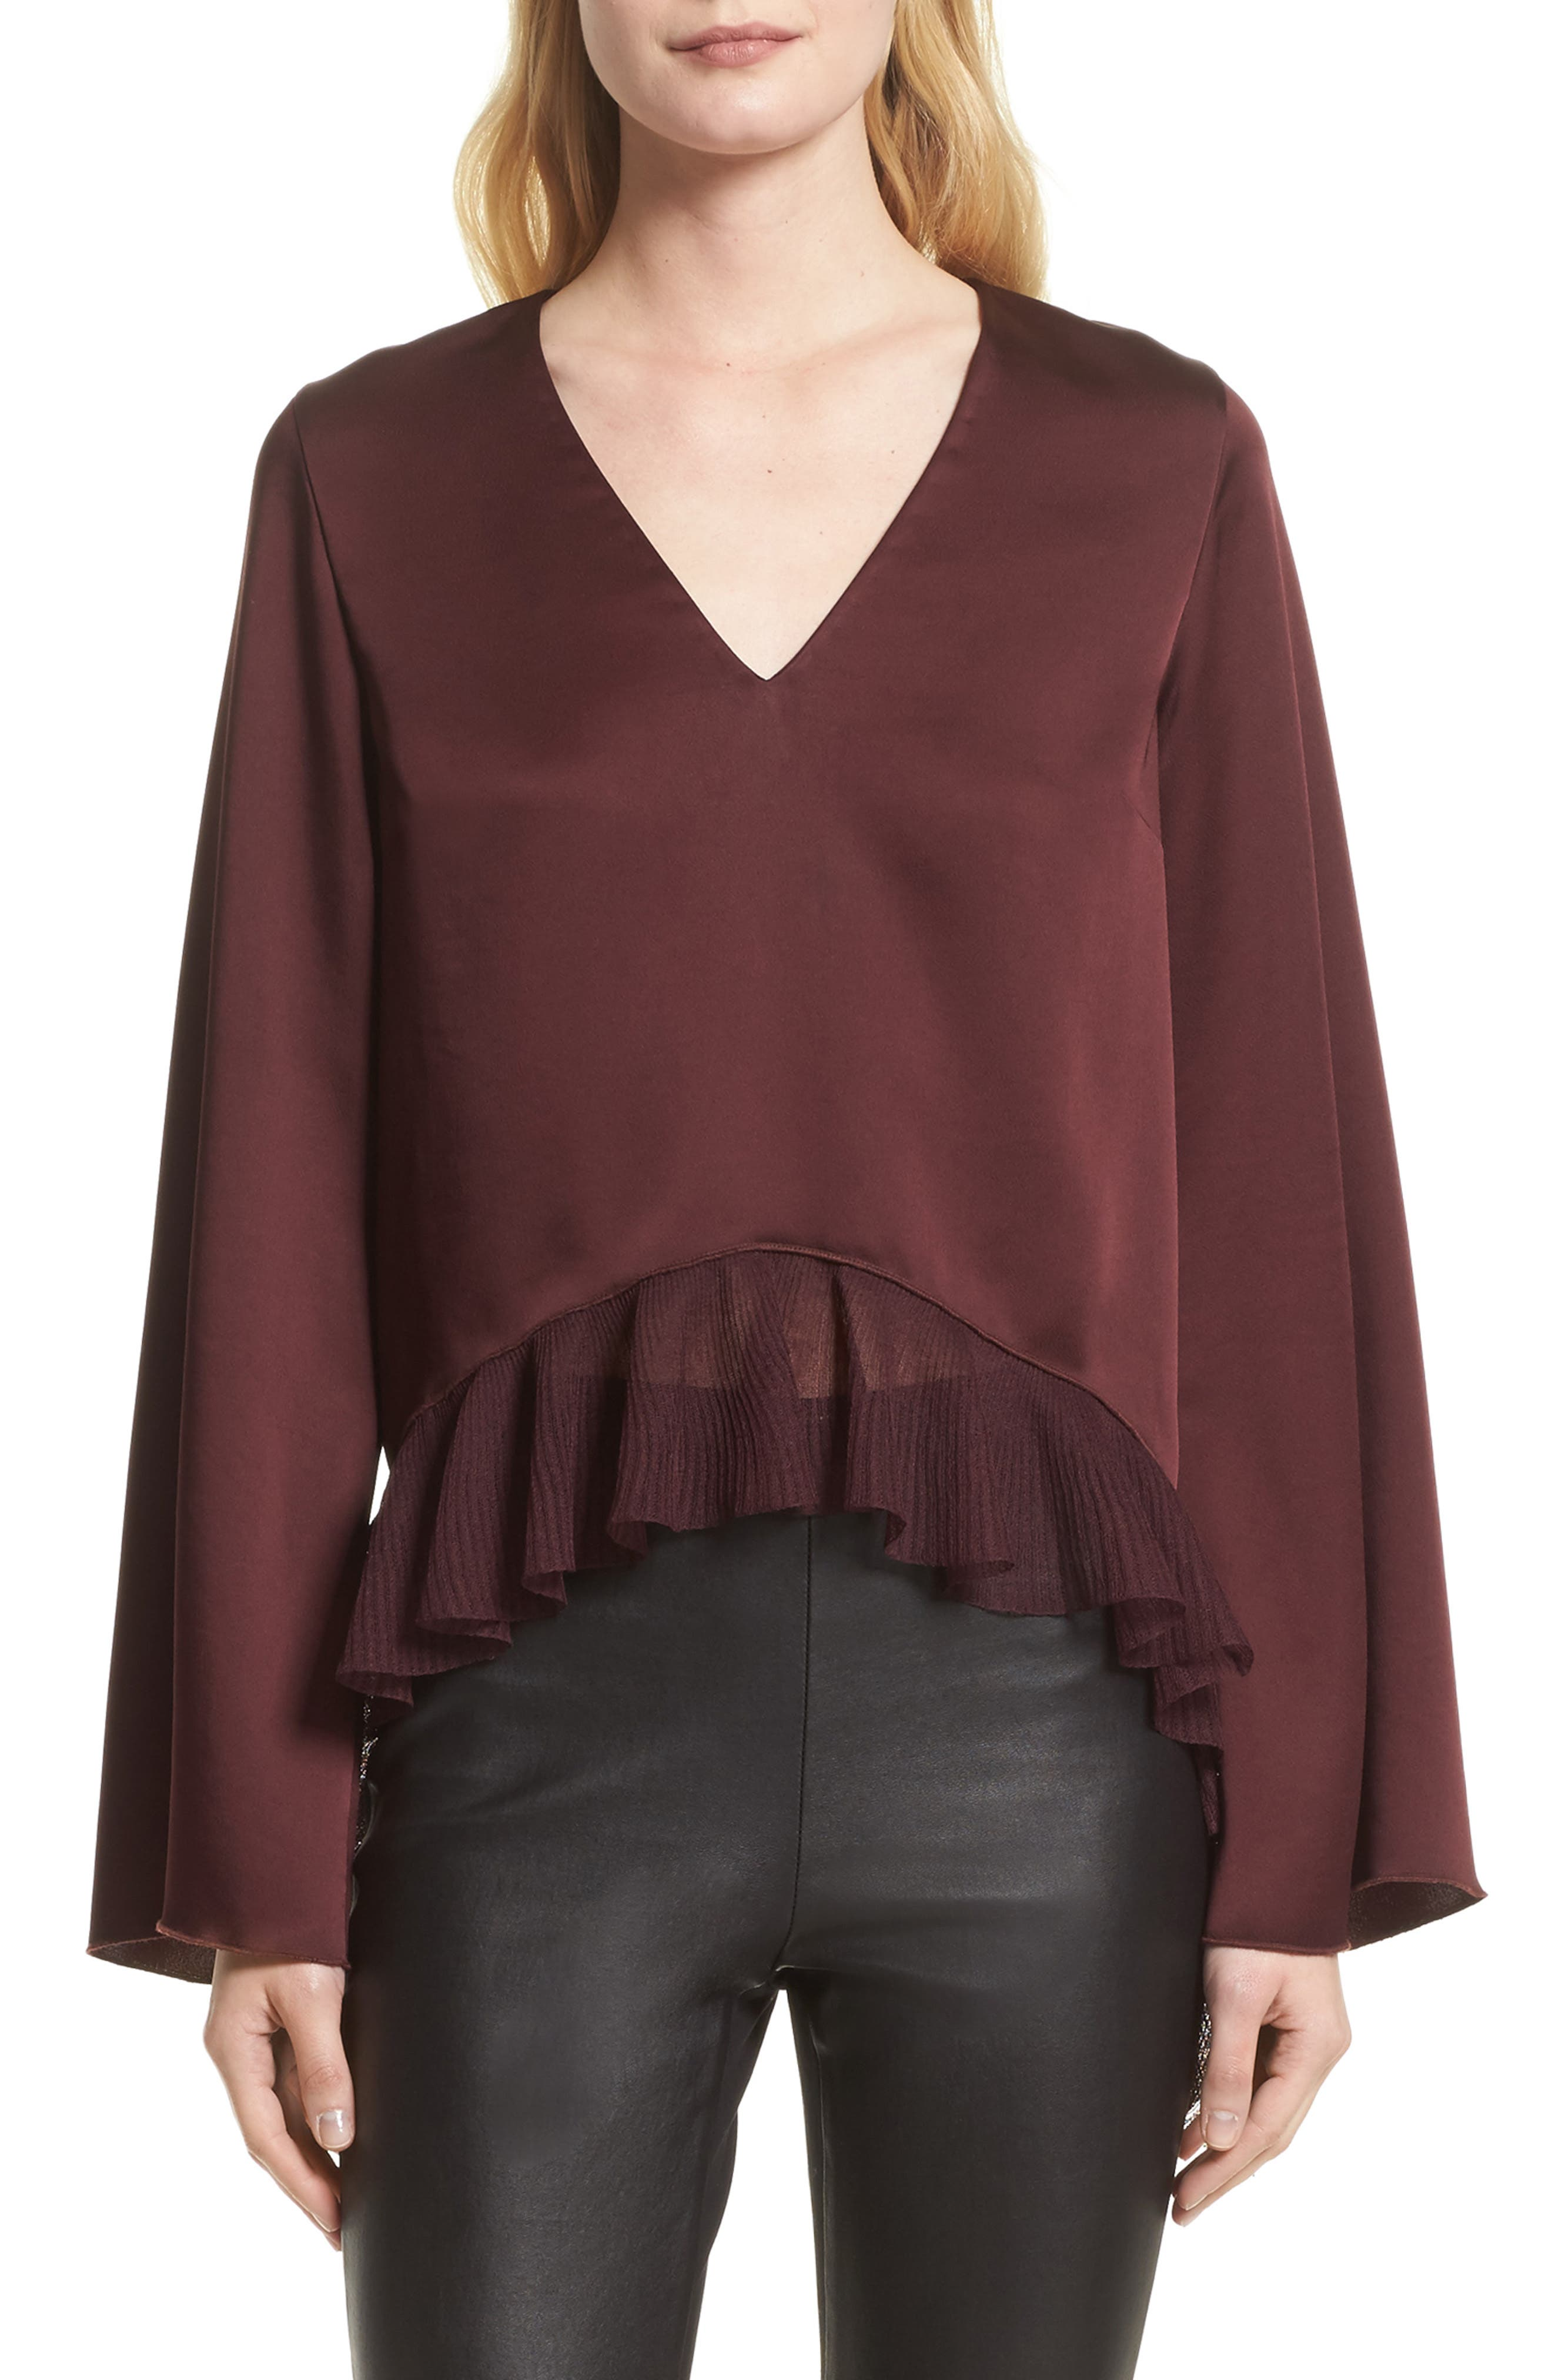 Elizabeth and James Heath Ruffle Hem Top (Nordstrom Exclusive)